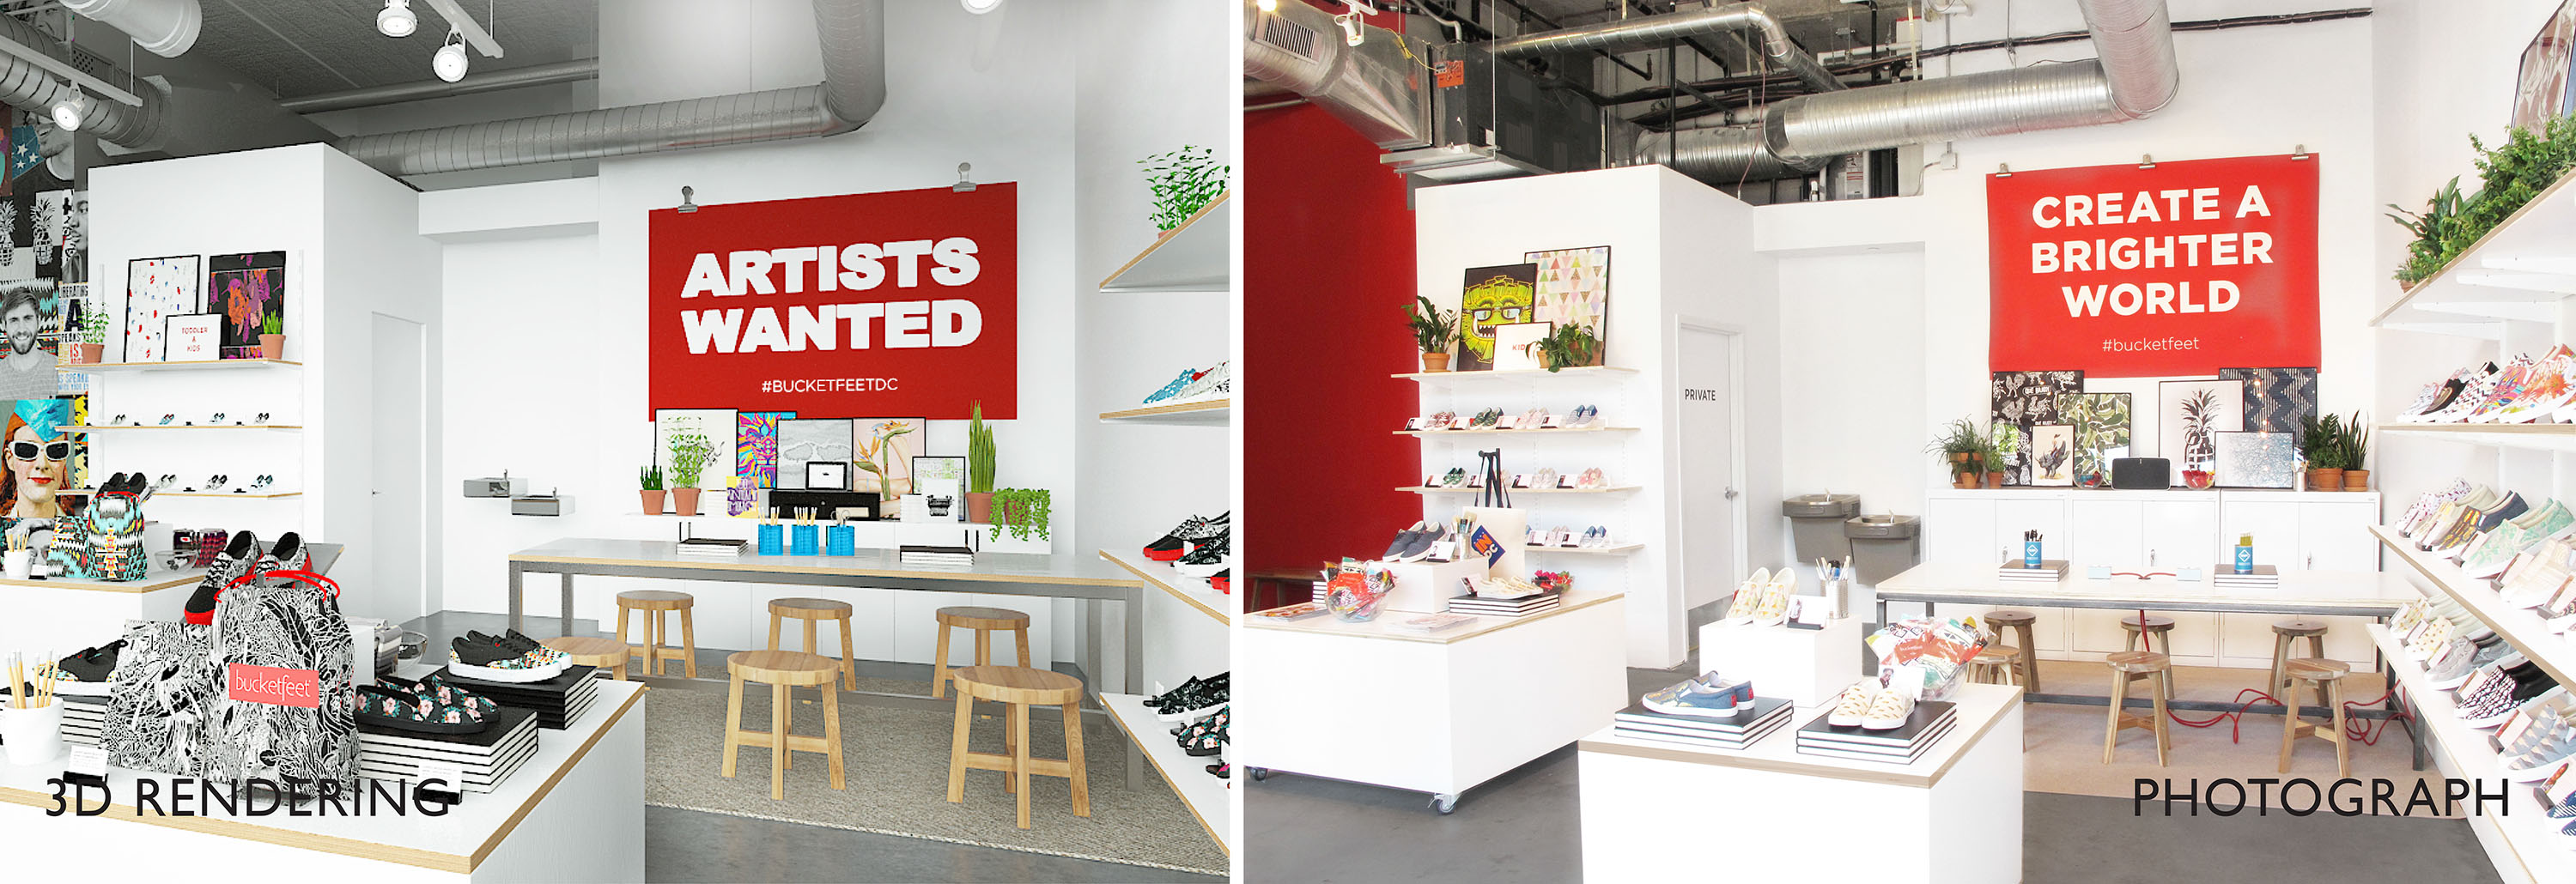 Before and after rendering | Profesional retail design, accurate rendering execution and visual merchandising by Gala Magriña Design